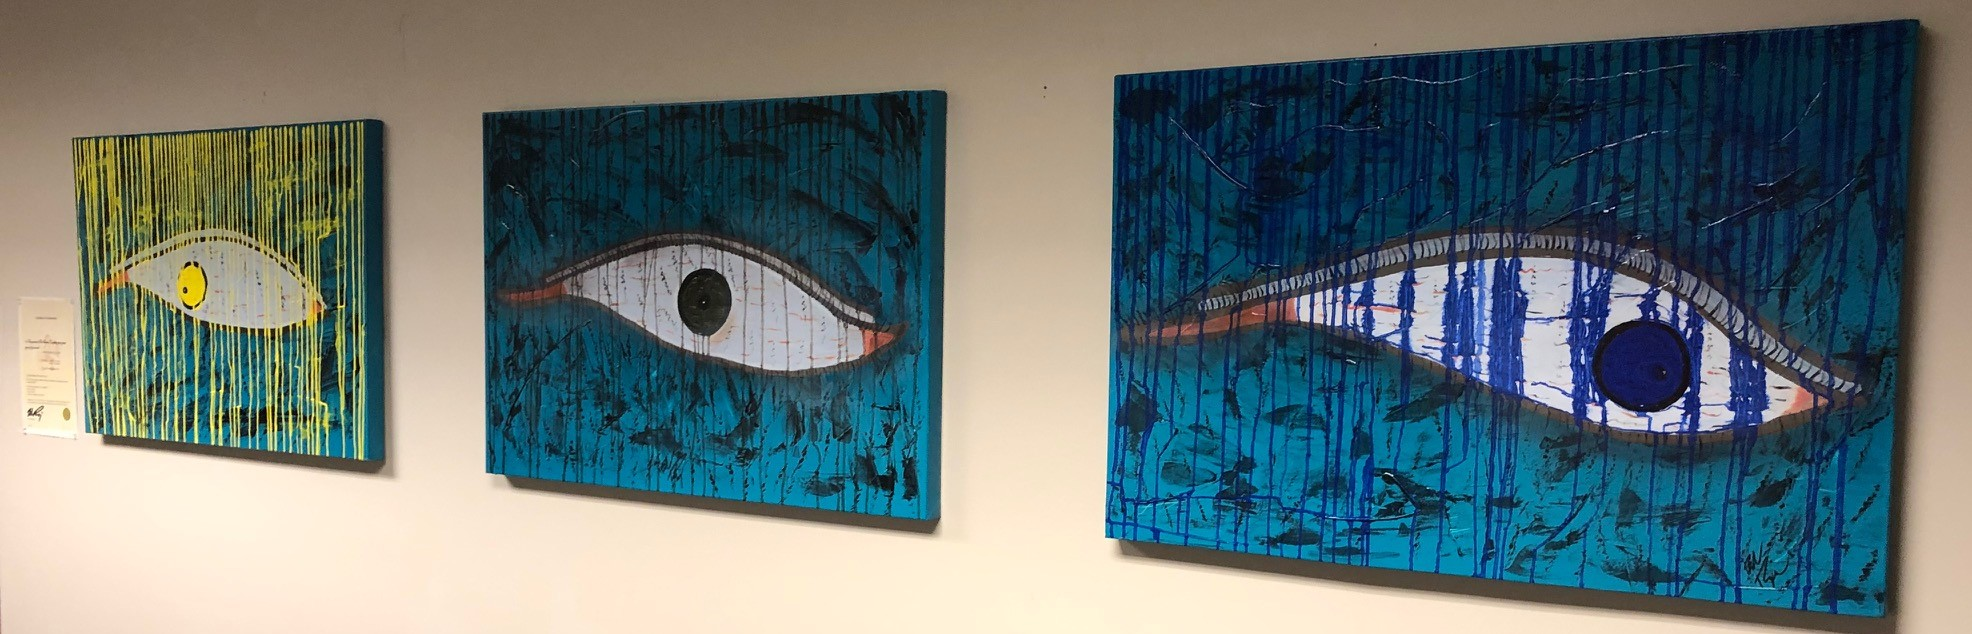 Turquoise Series looking into your eyes of your soul artwork by Bob Rispoli - art listed for sale on Artplode